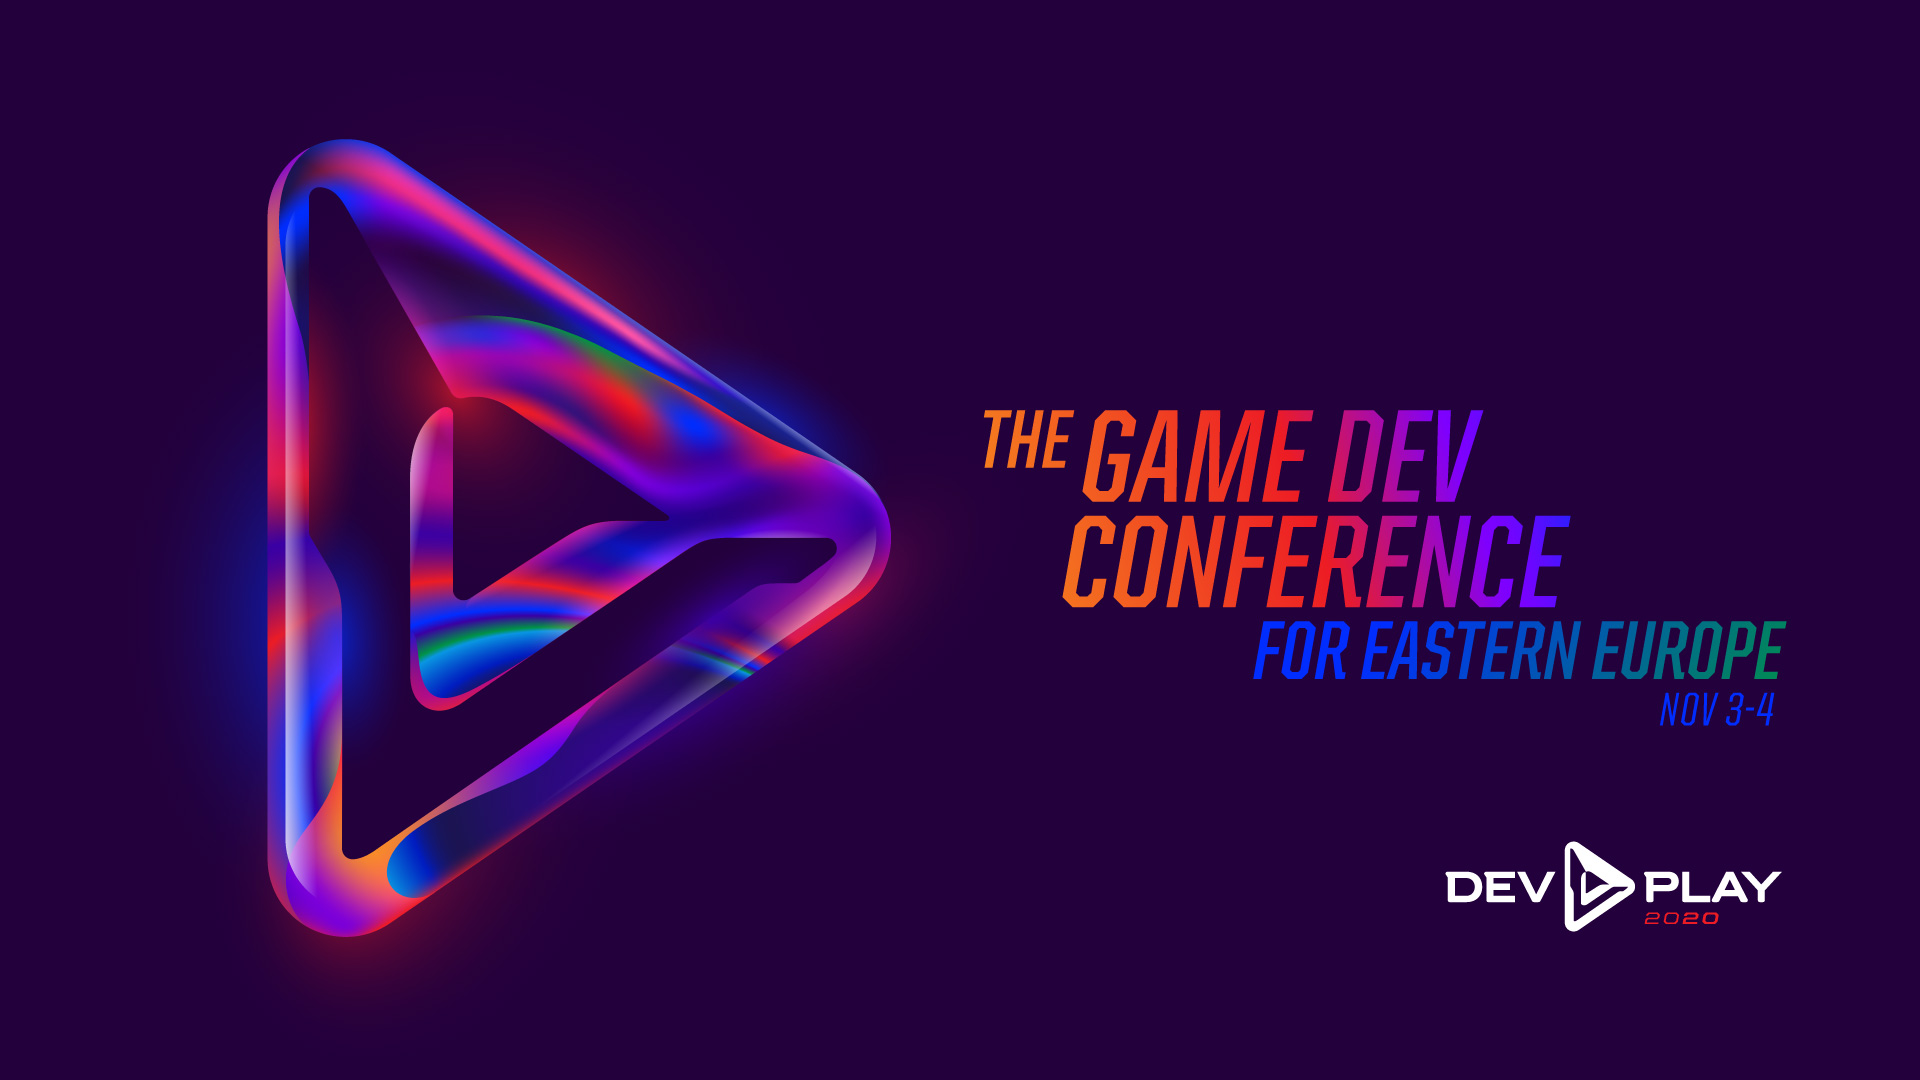 PRESS RELEASE: INNOVATION IN GAME DEVELOPMENT IS THE FOCUS OF 2020 EDITION OF DEV.PLAY CONFERENCE